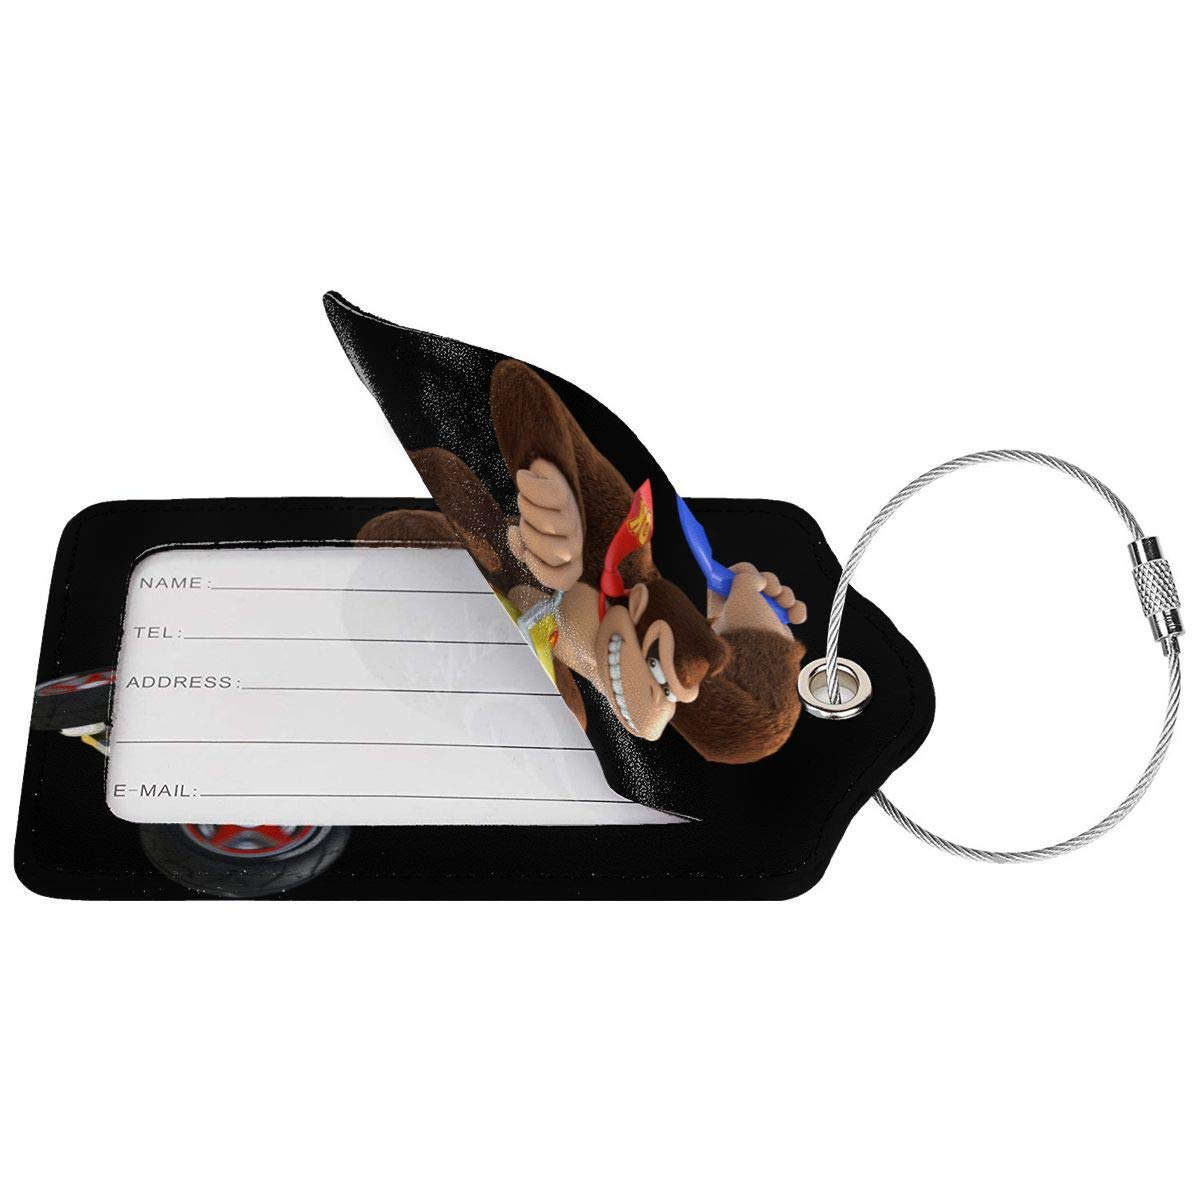 Donkey Kong Travel Luggage Tags With Full Privacy Cover Leather Case And Stainless Steel Loop